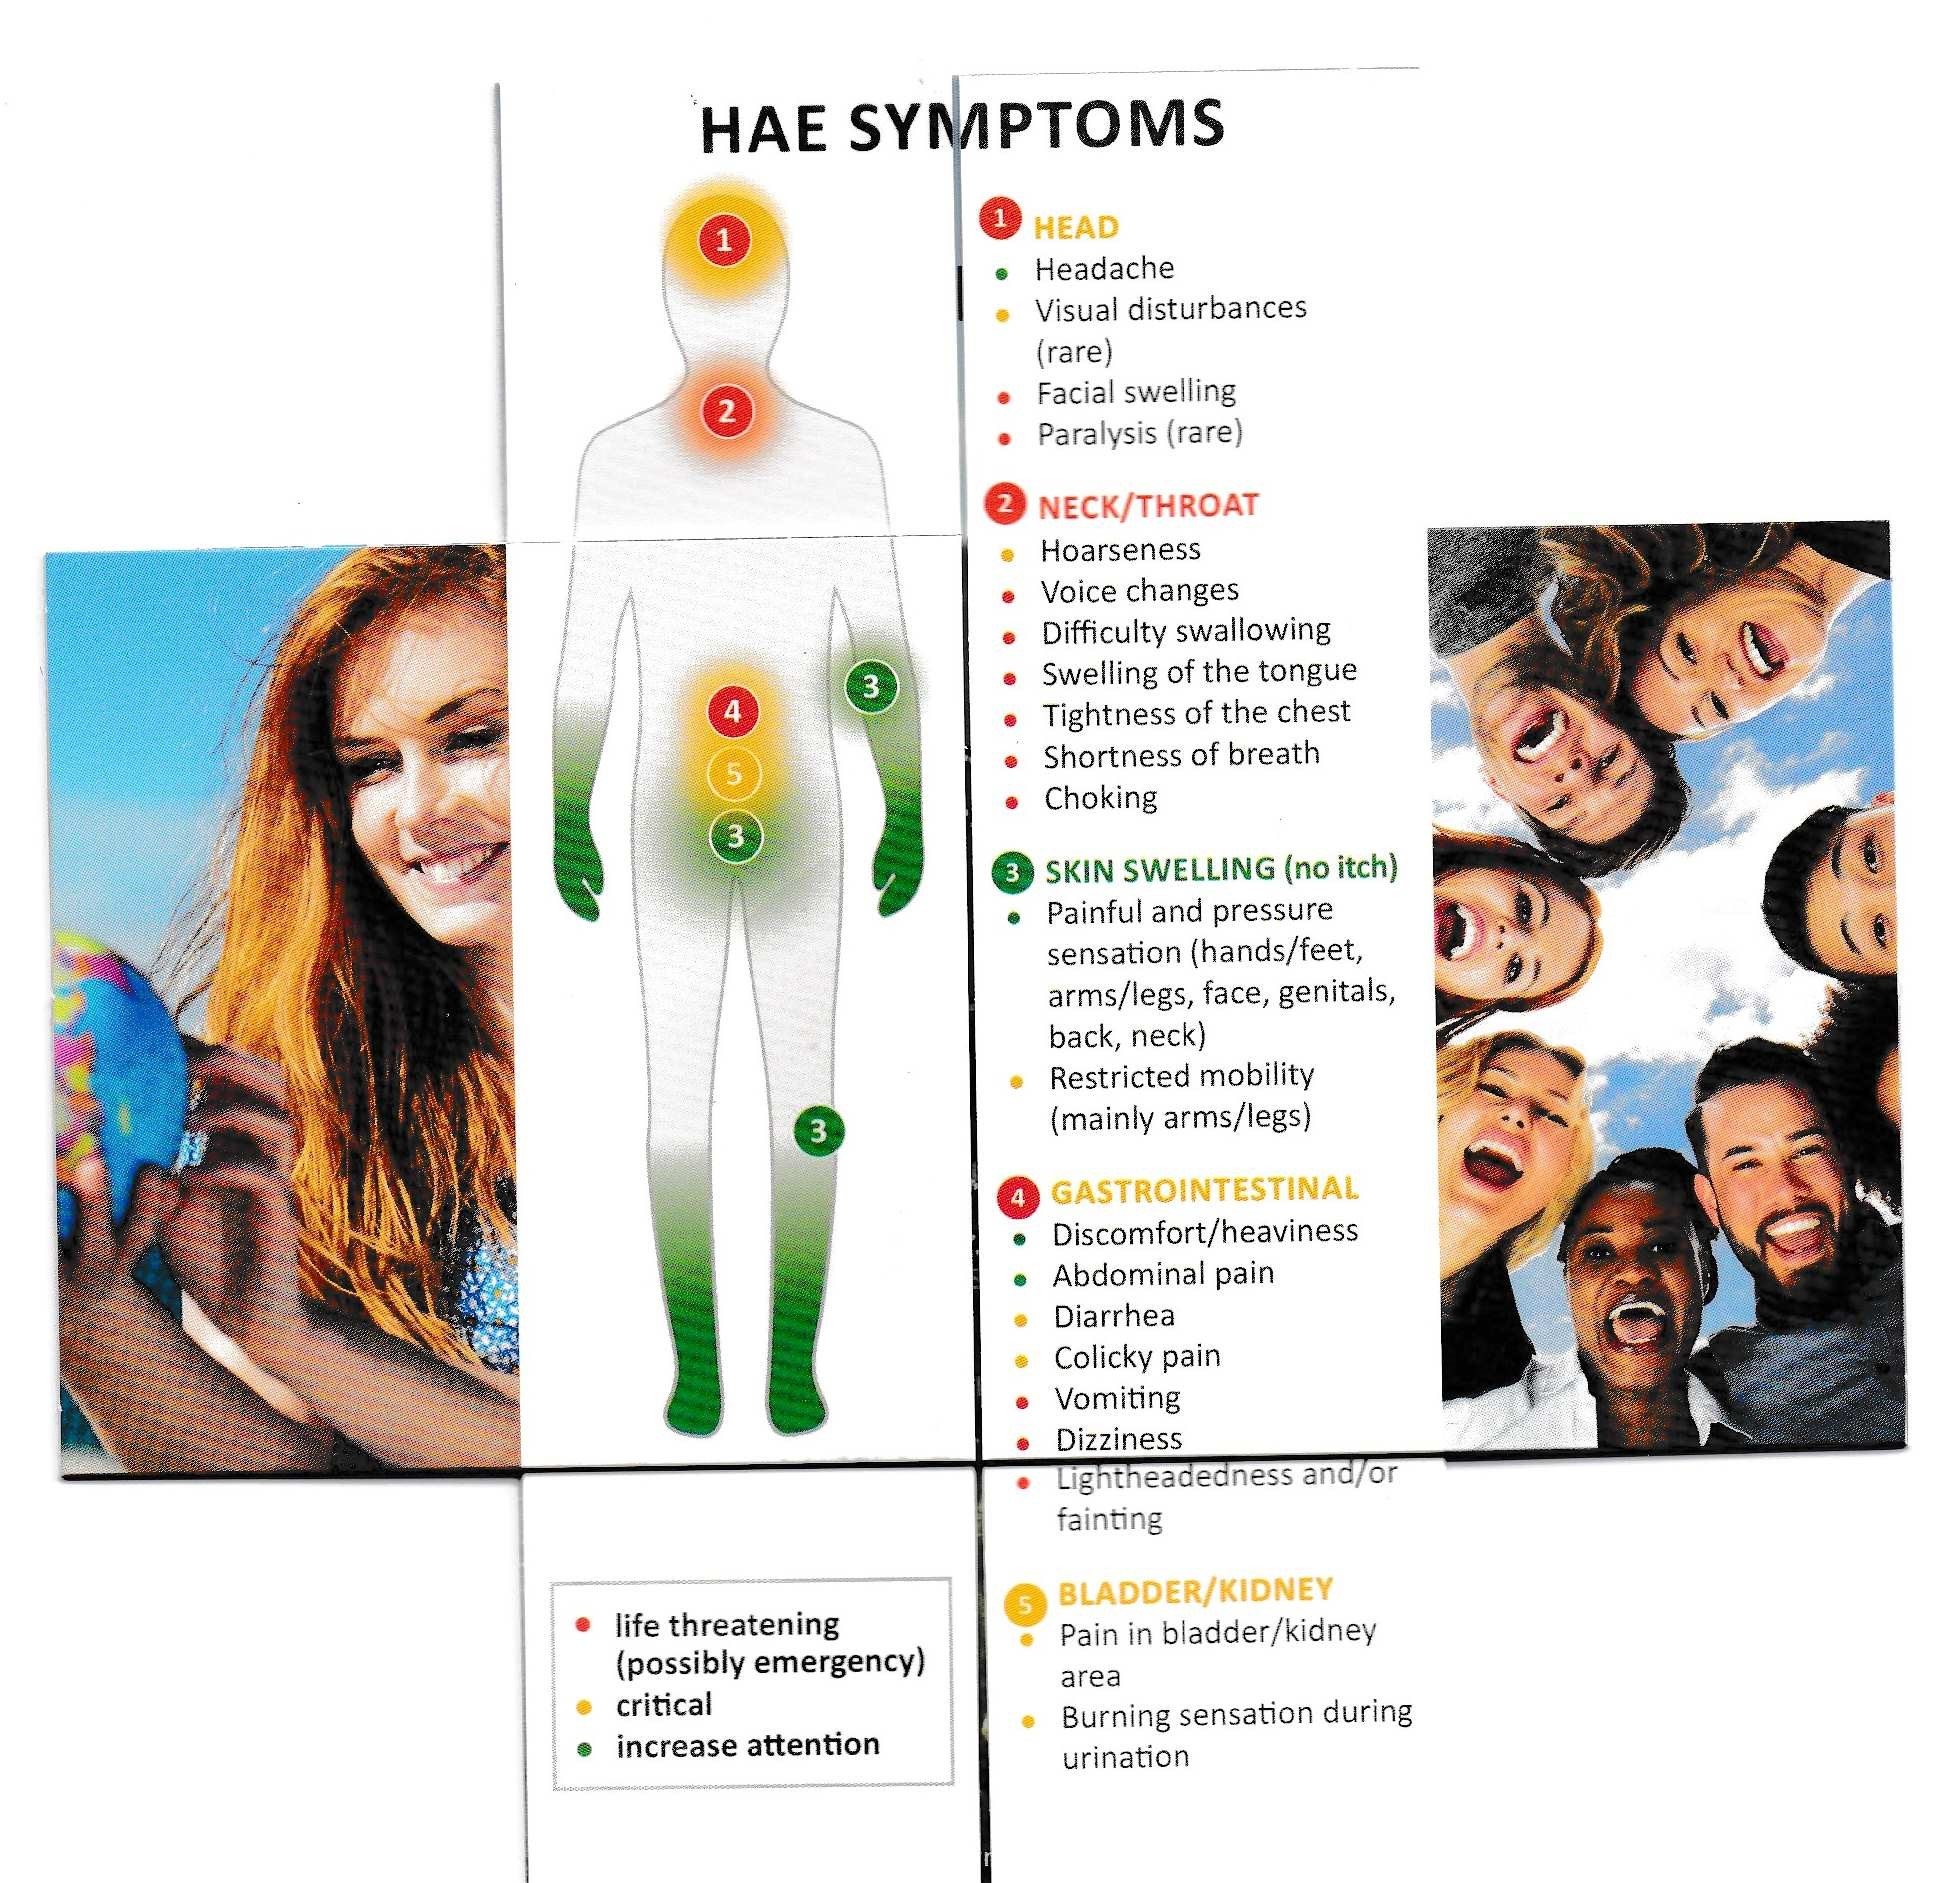 Overview of symptoms for diagnosis of an HAE attack with colour coded indicators of severity